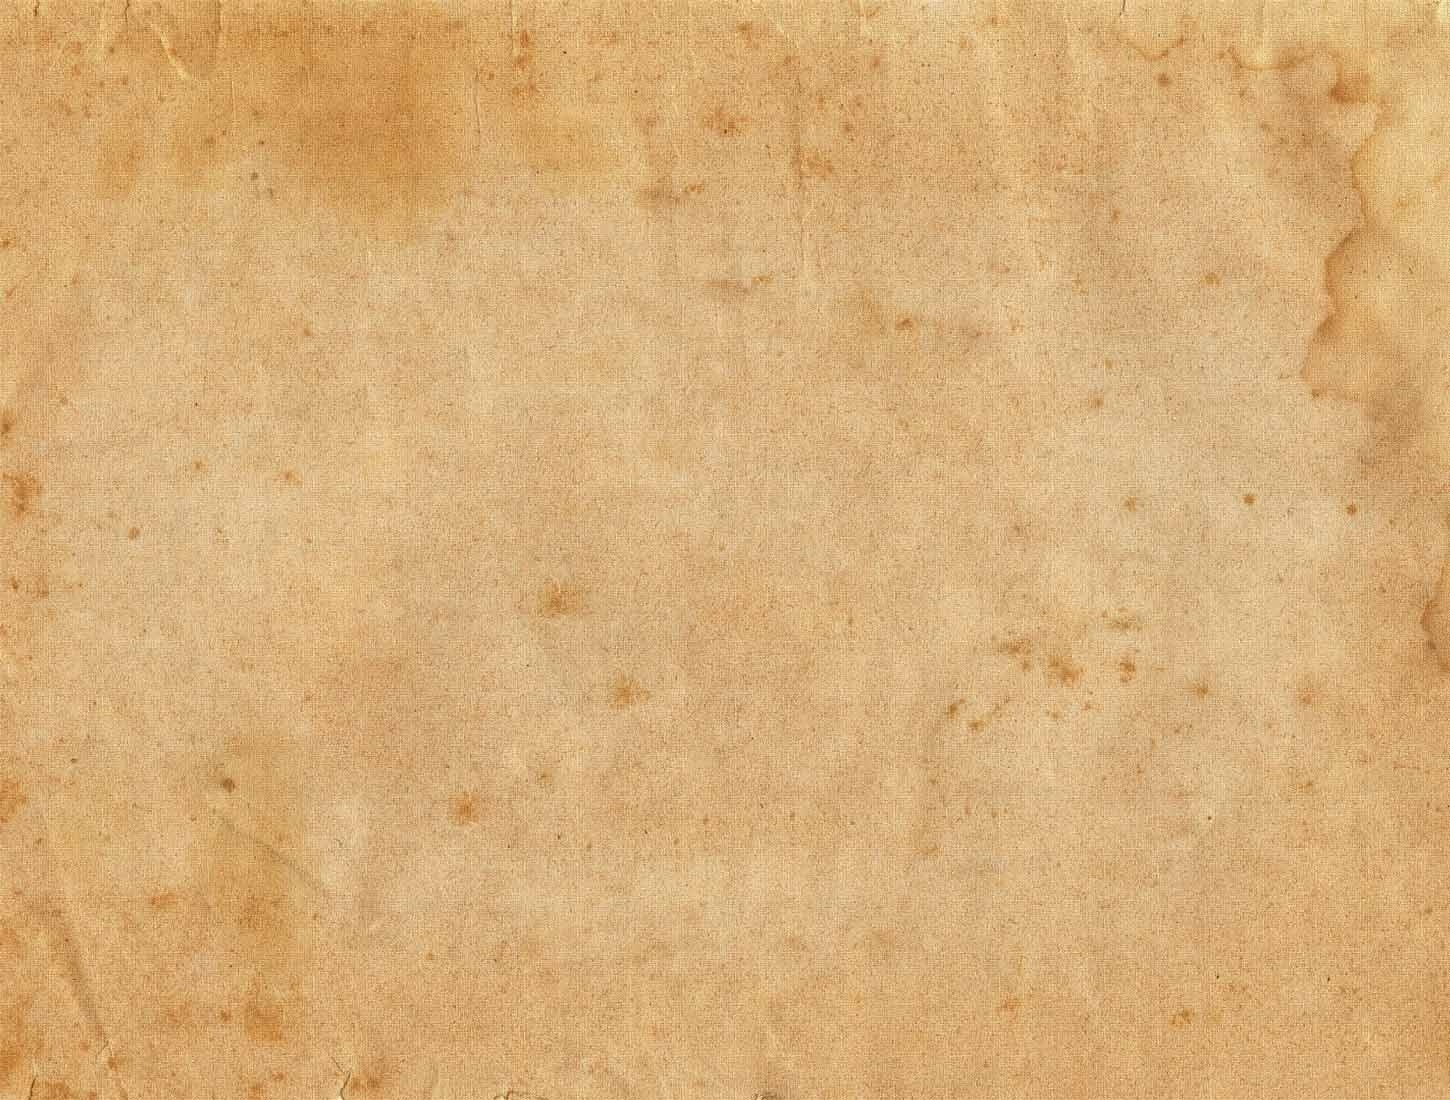 Old Beige Blank Paper Ppt Backgrounds For Your Powerpoint 1450x1100